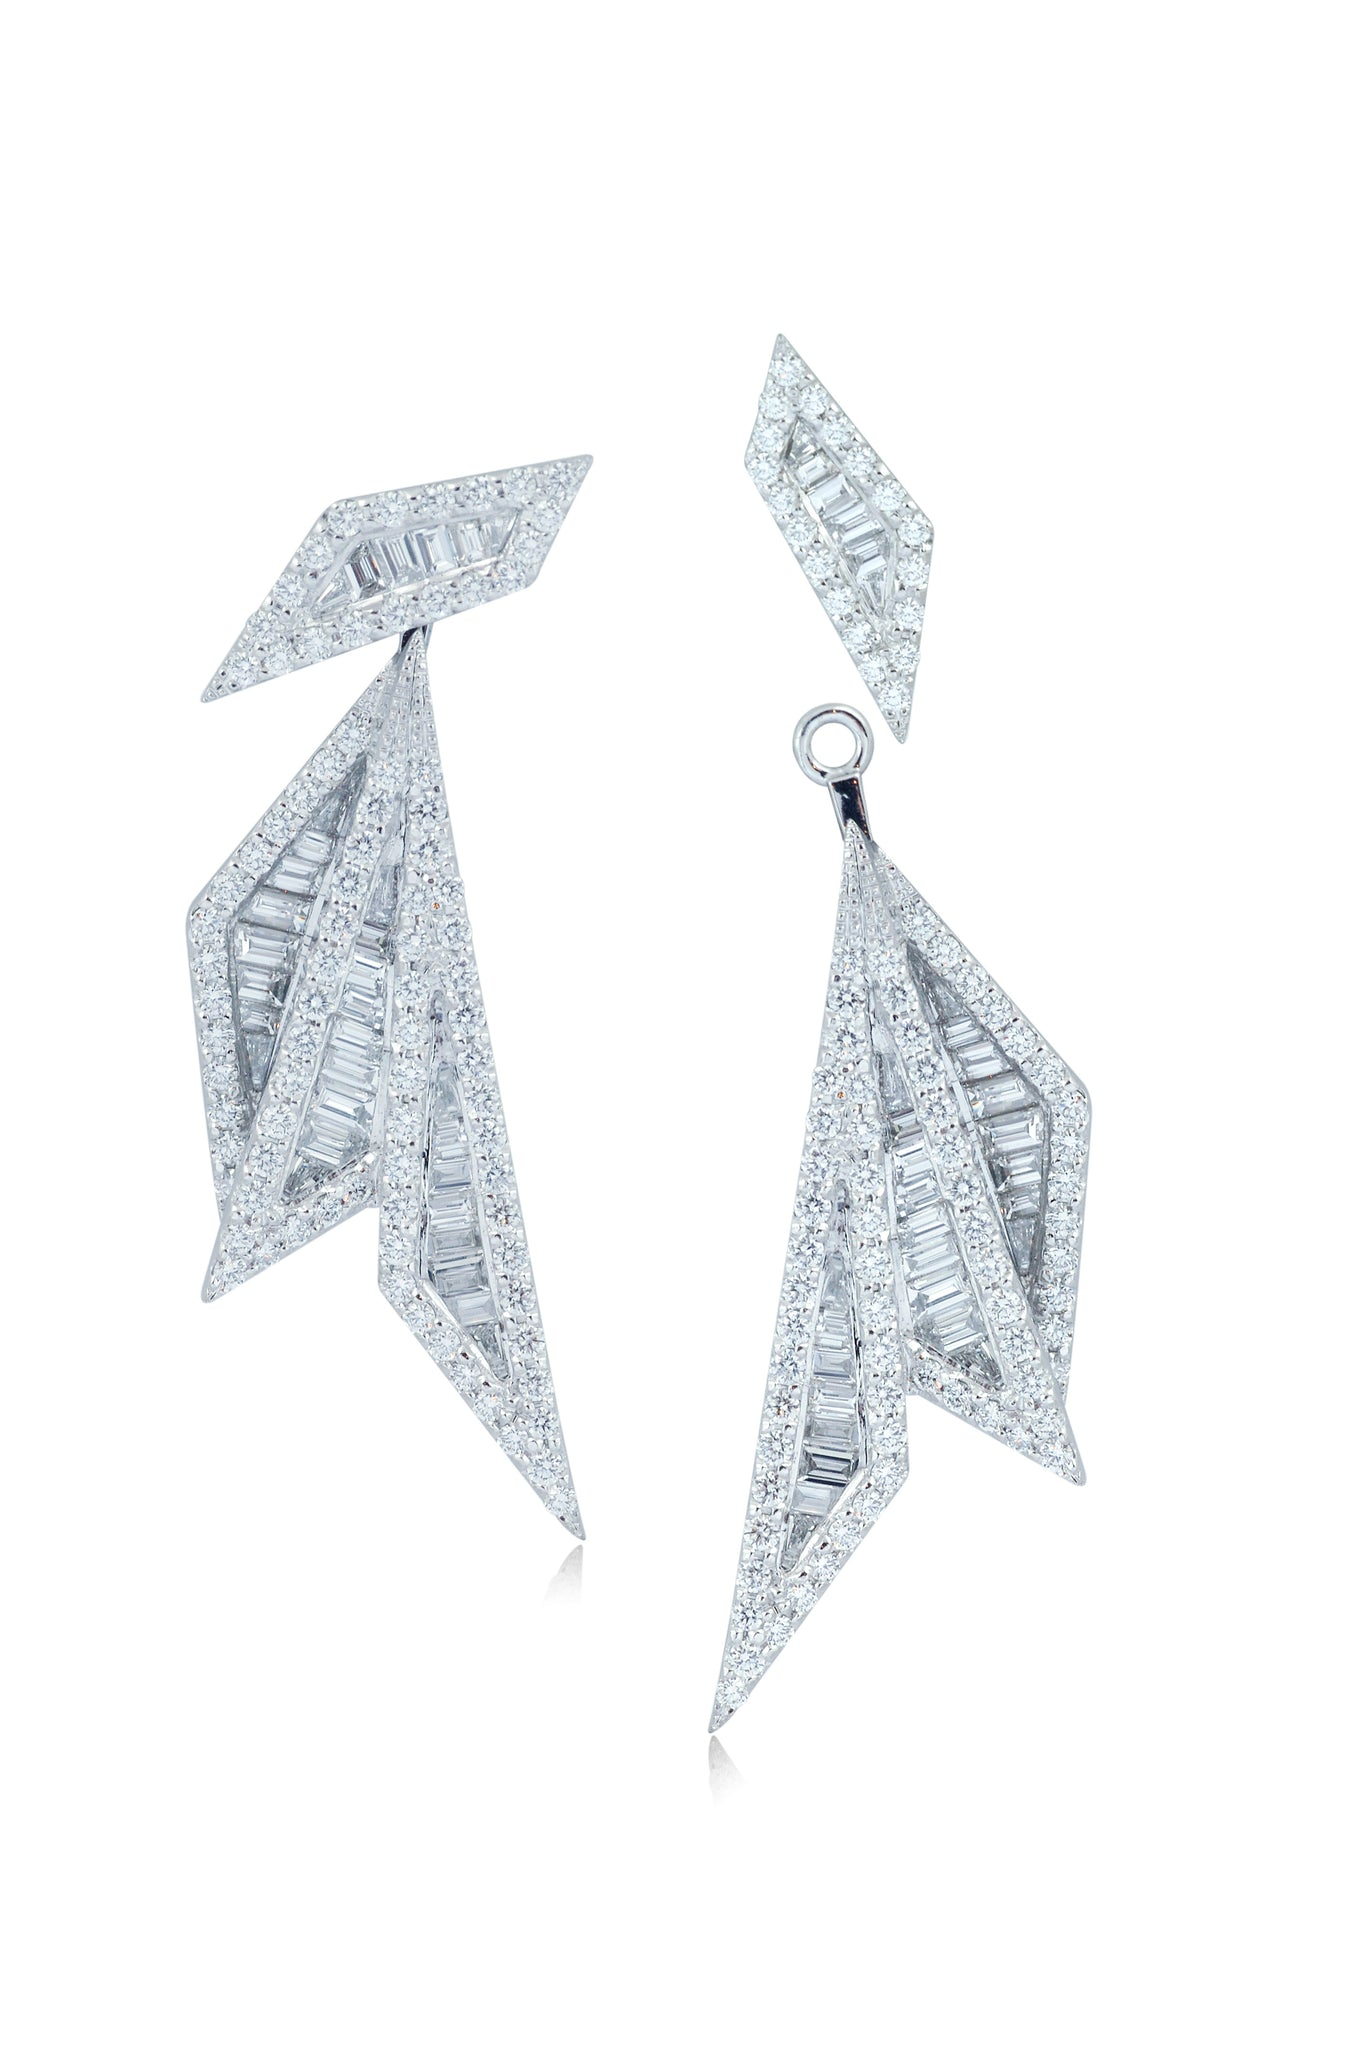 Origami Palm Leaf Diamond Earrings